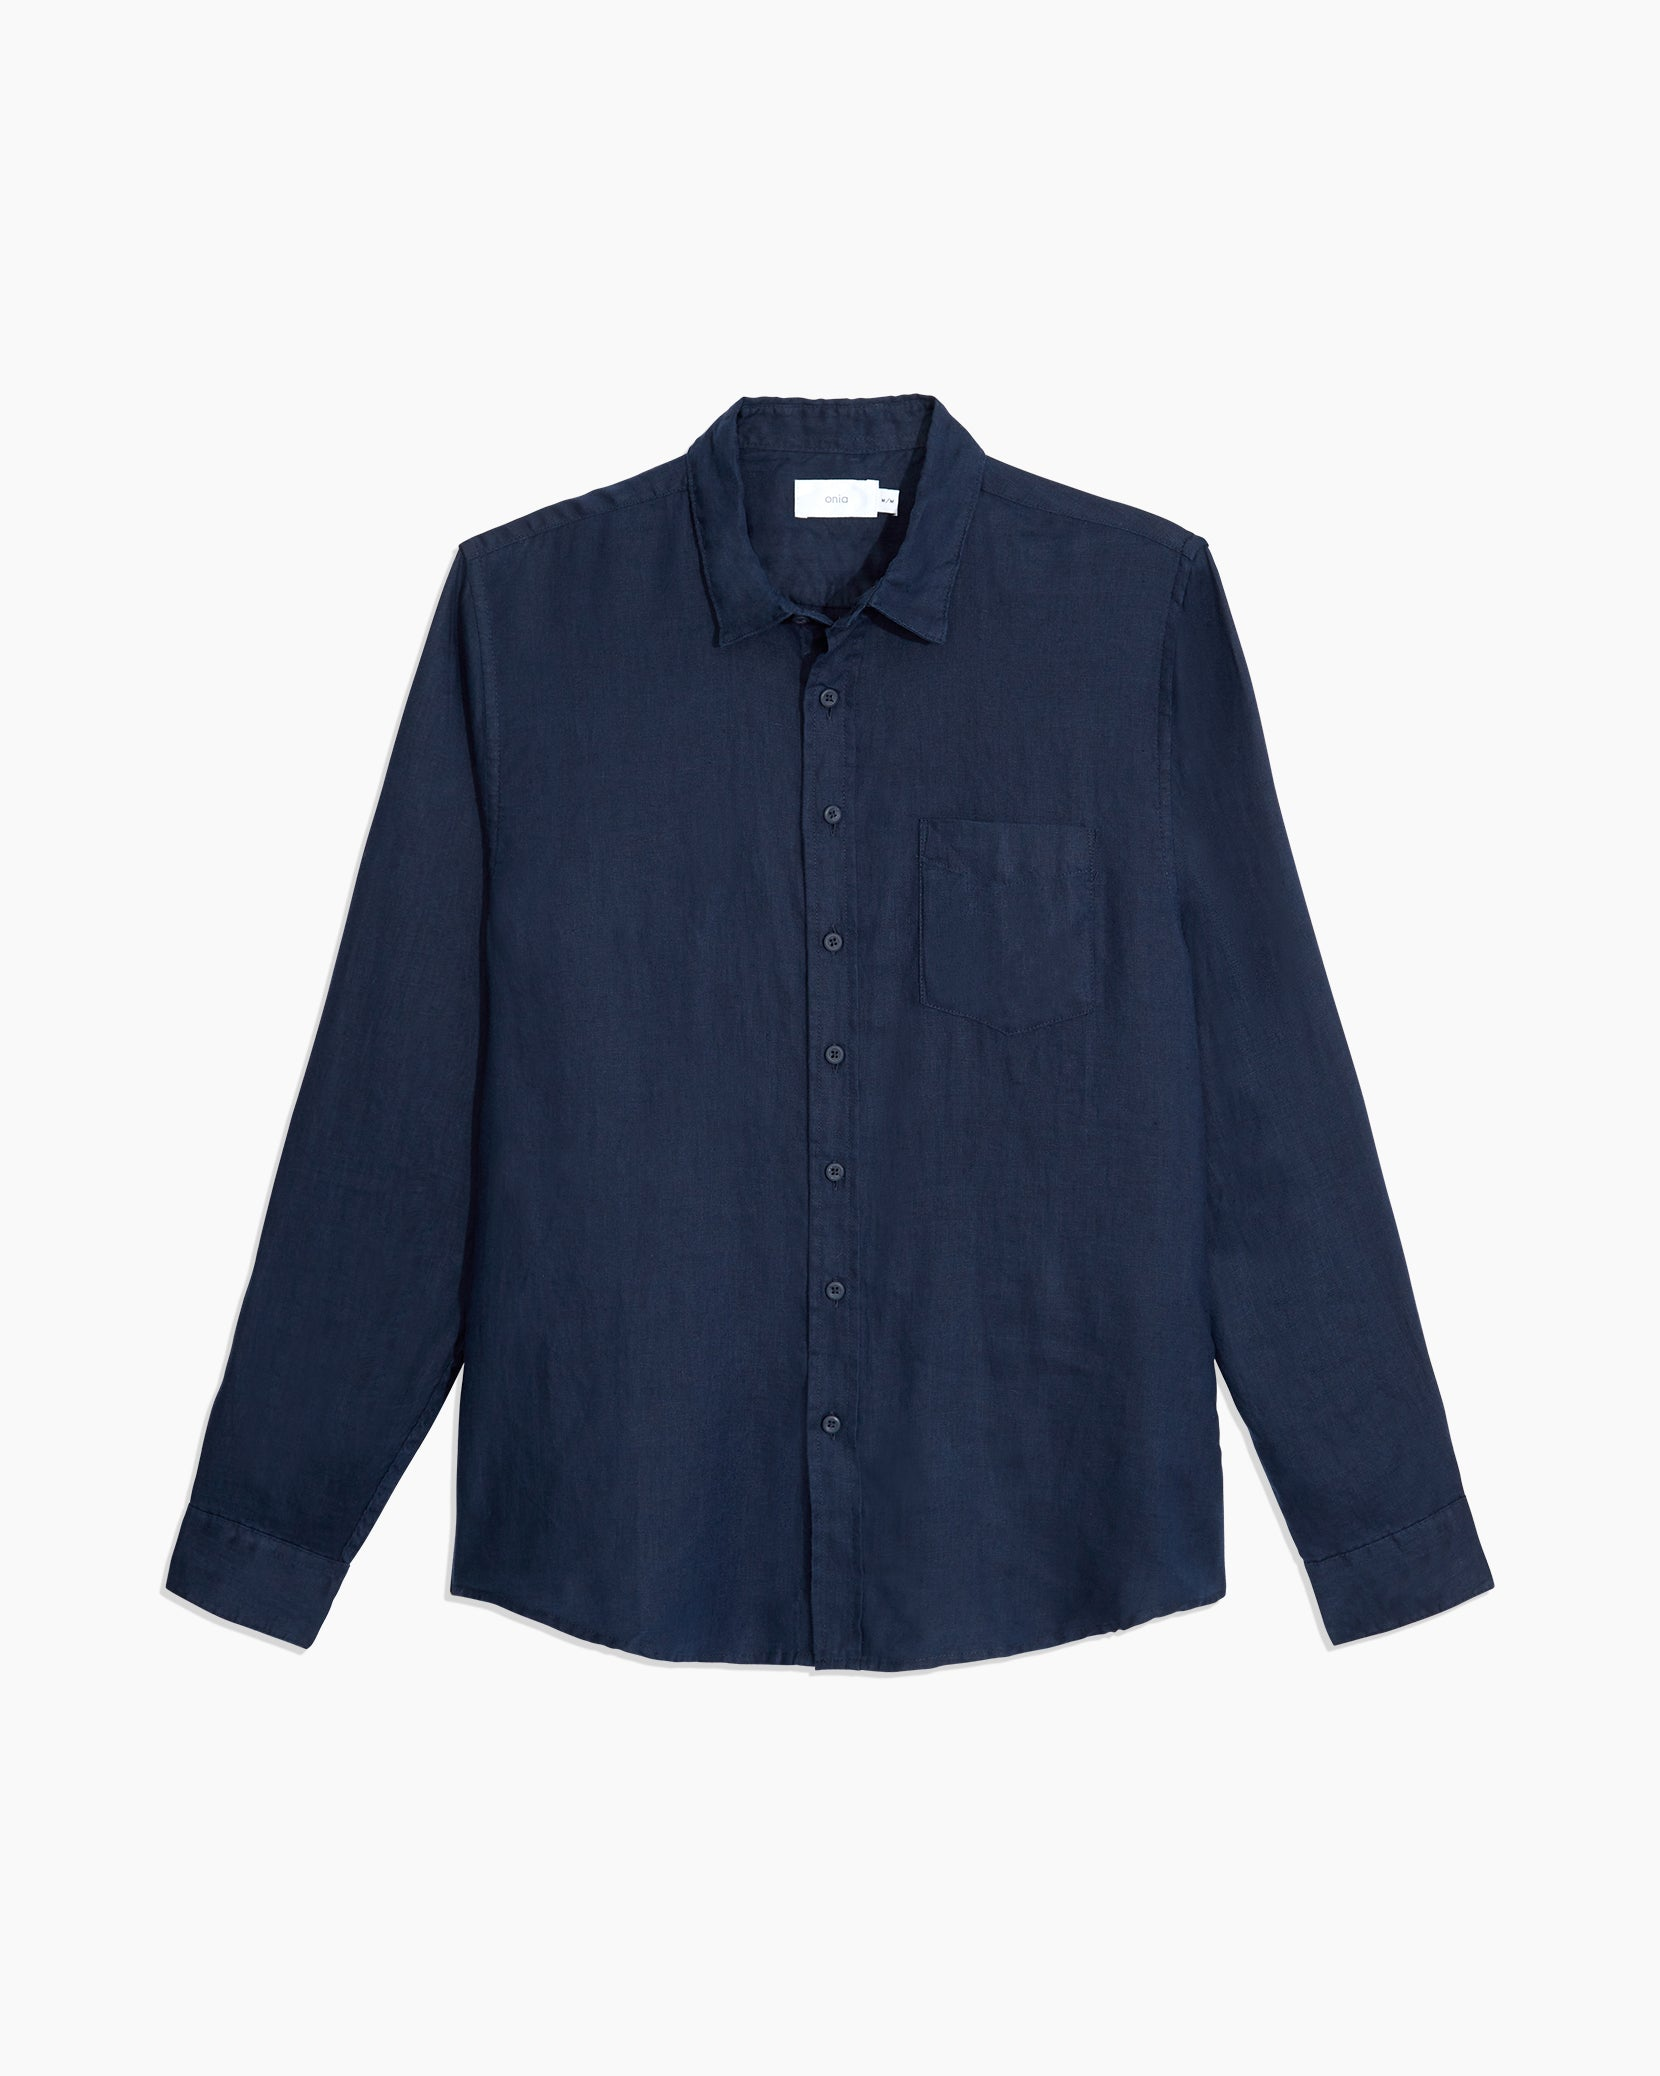 Abe Linen Shirt in Deep Navy - 1 - Onia